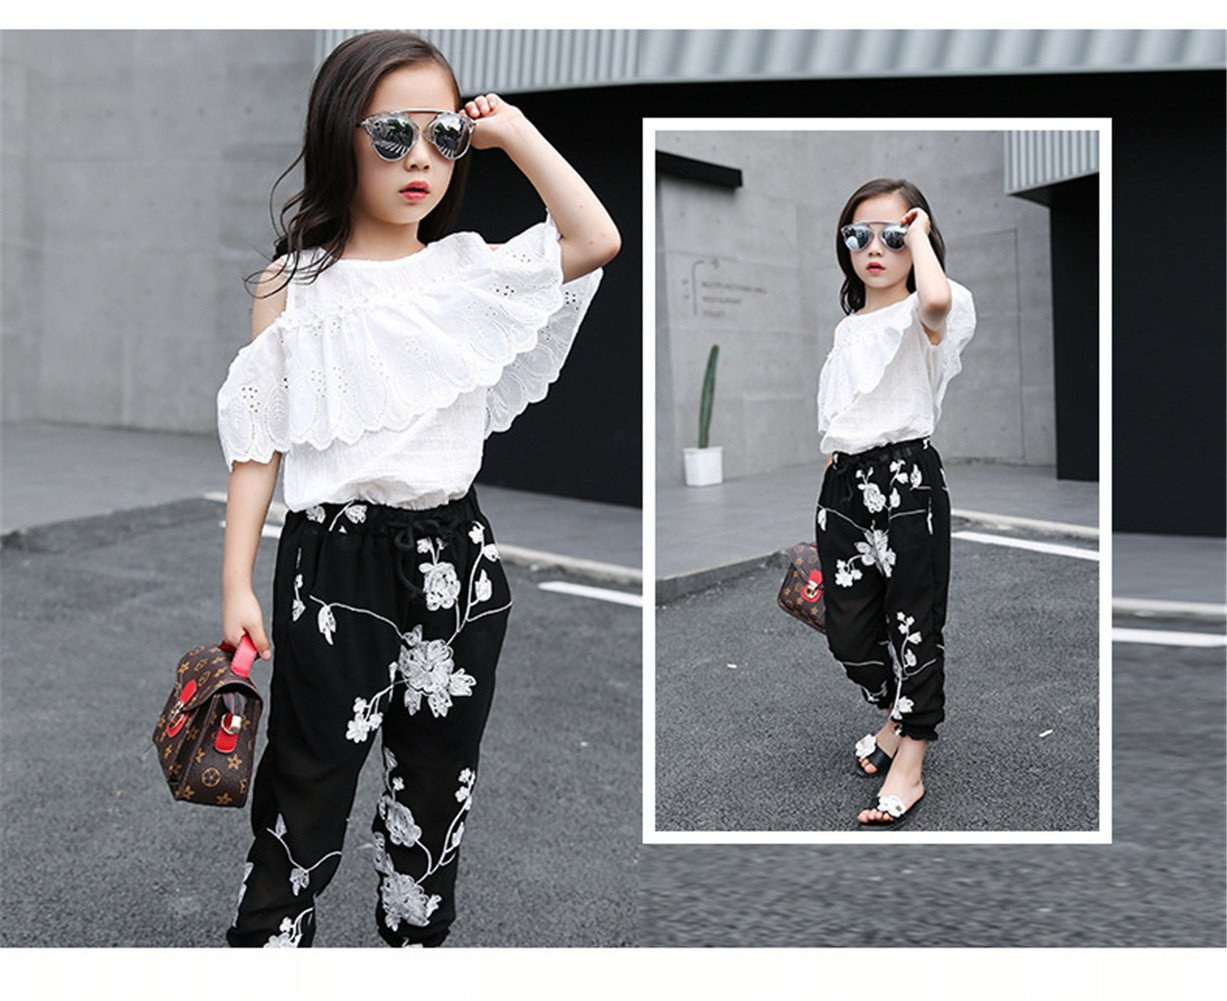 FTSUCQ Girls Pullover Off-Shoulder Lace Shirt Top + Floral Cropped Trousers,140 by FTSUCQ (Image #2)